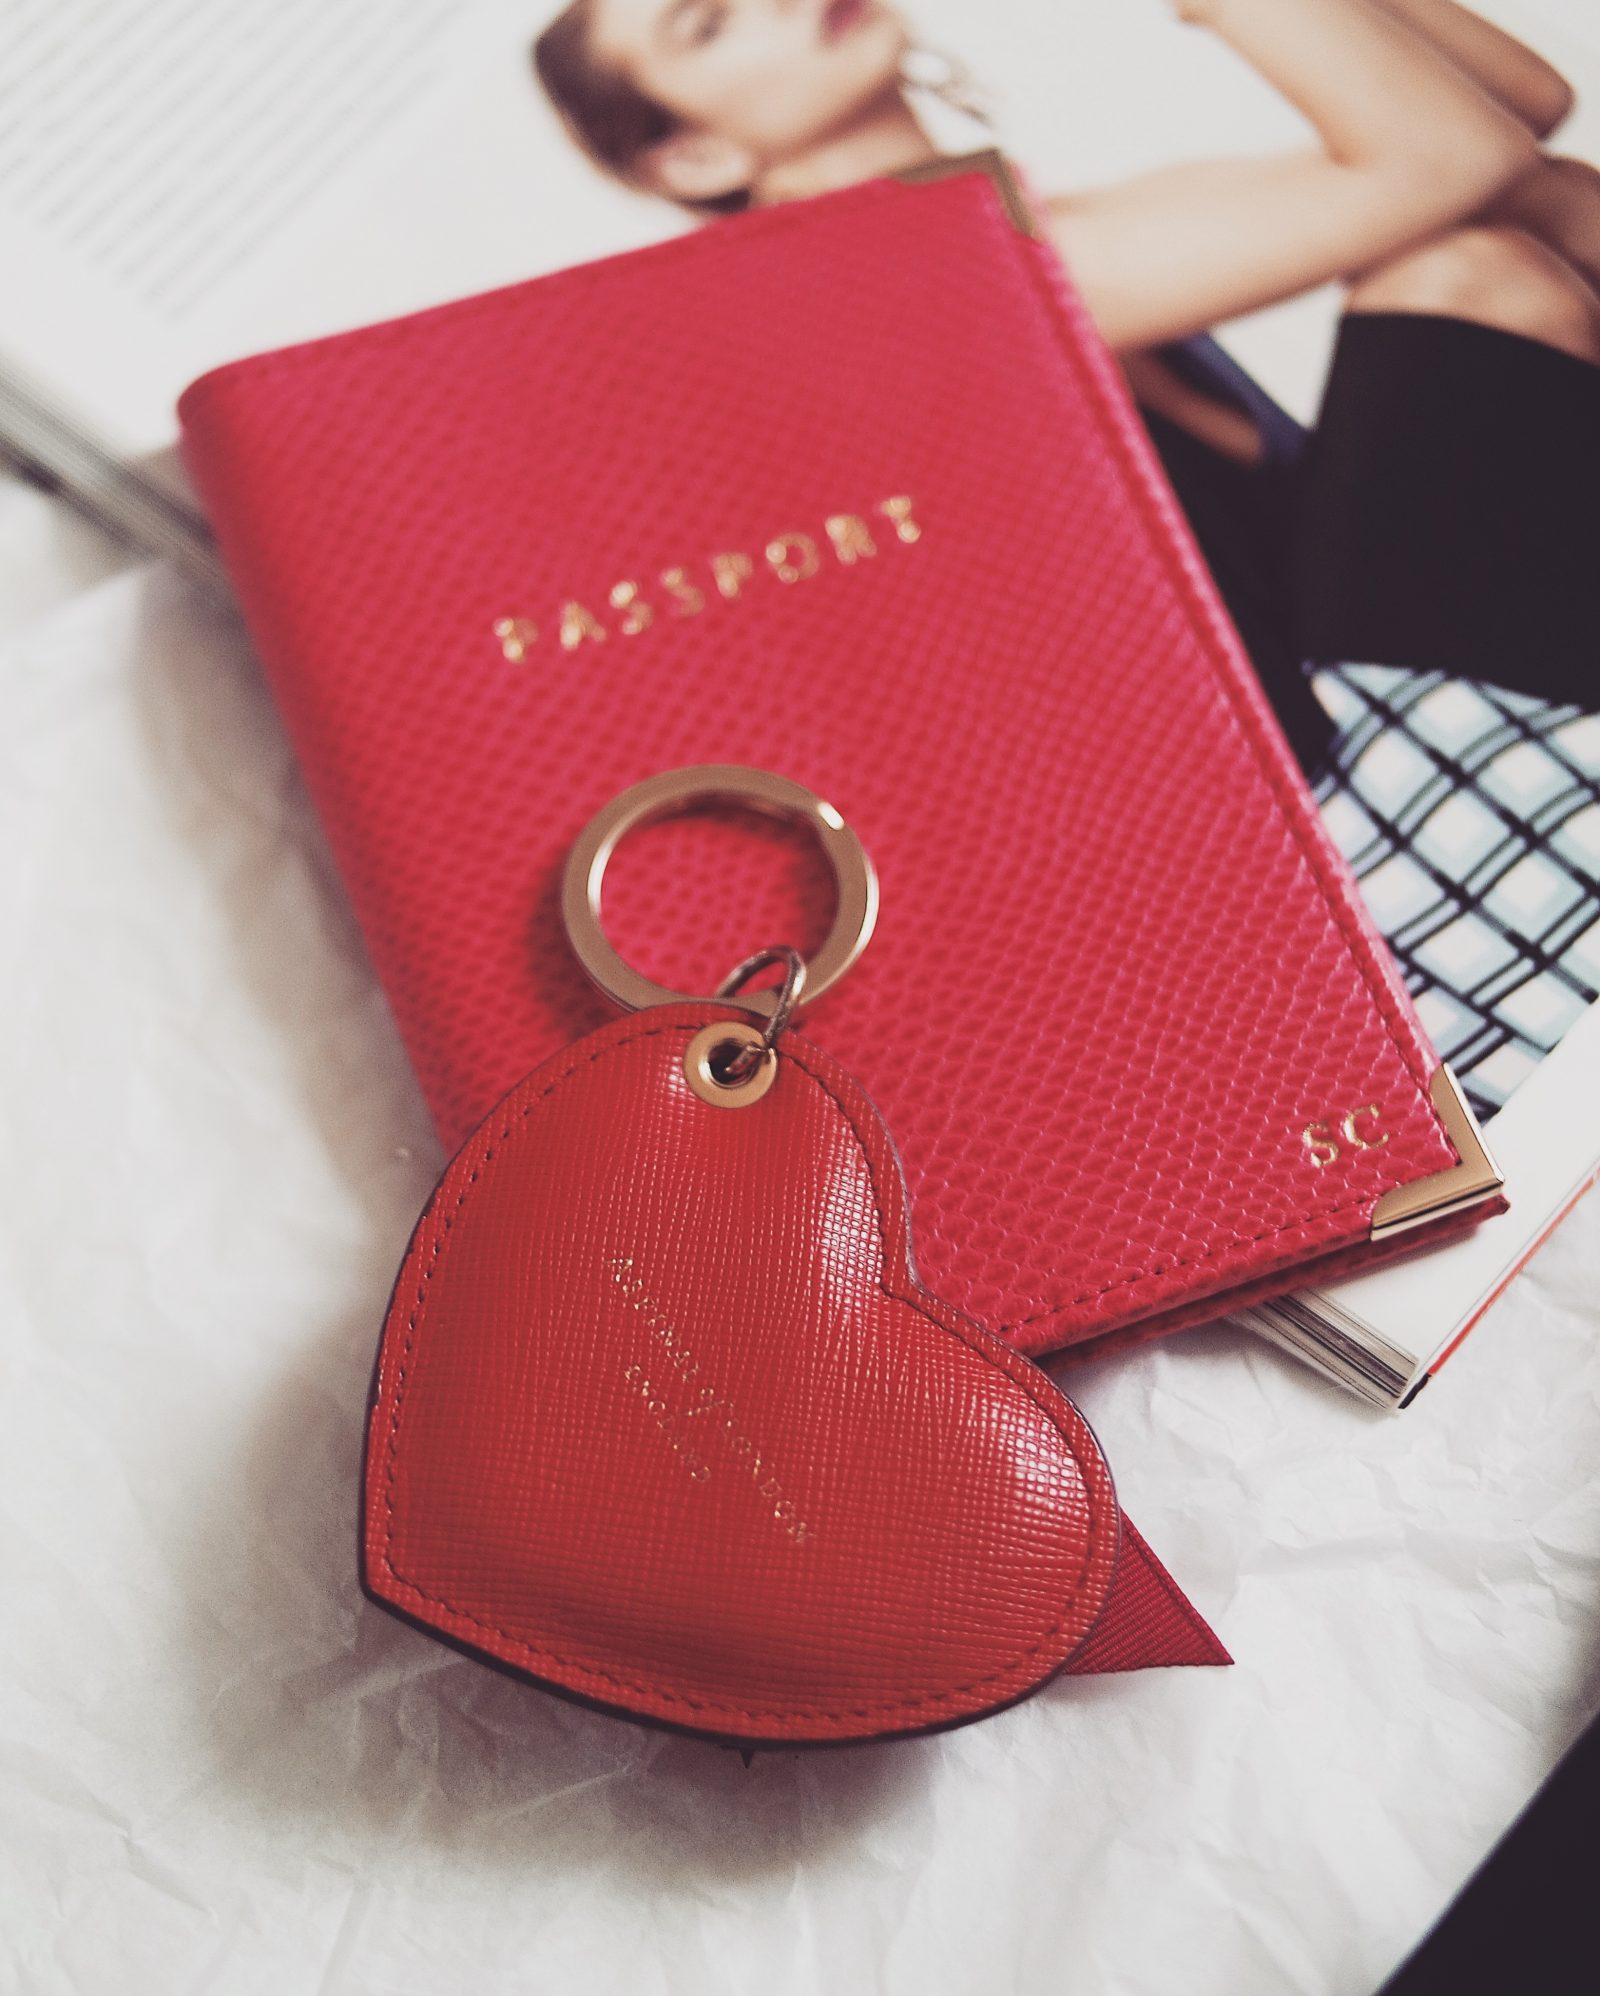 Gift guide for her - Aspinal Passport Holder